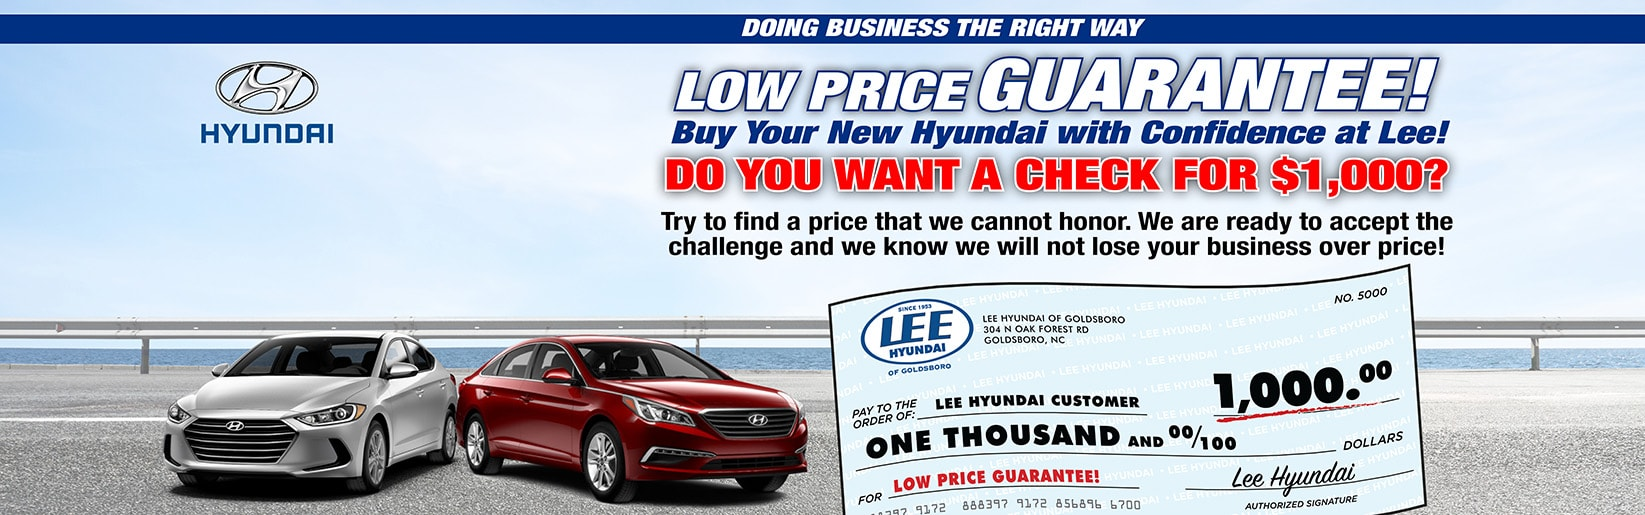 Lee hyundai of goldsboro - Lee Hyundai Of Goldsboro 0